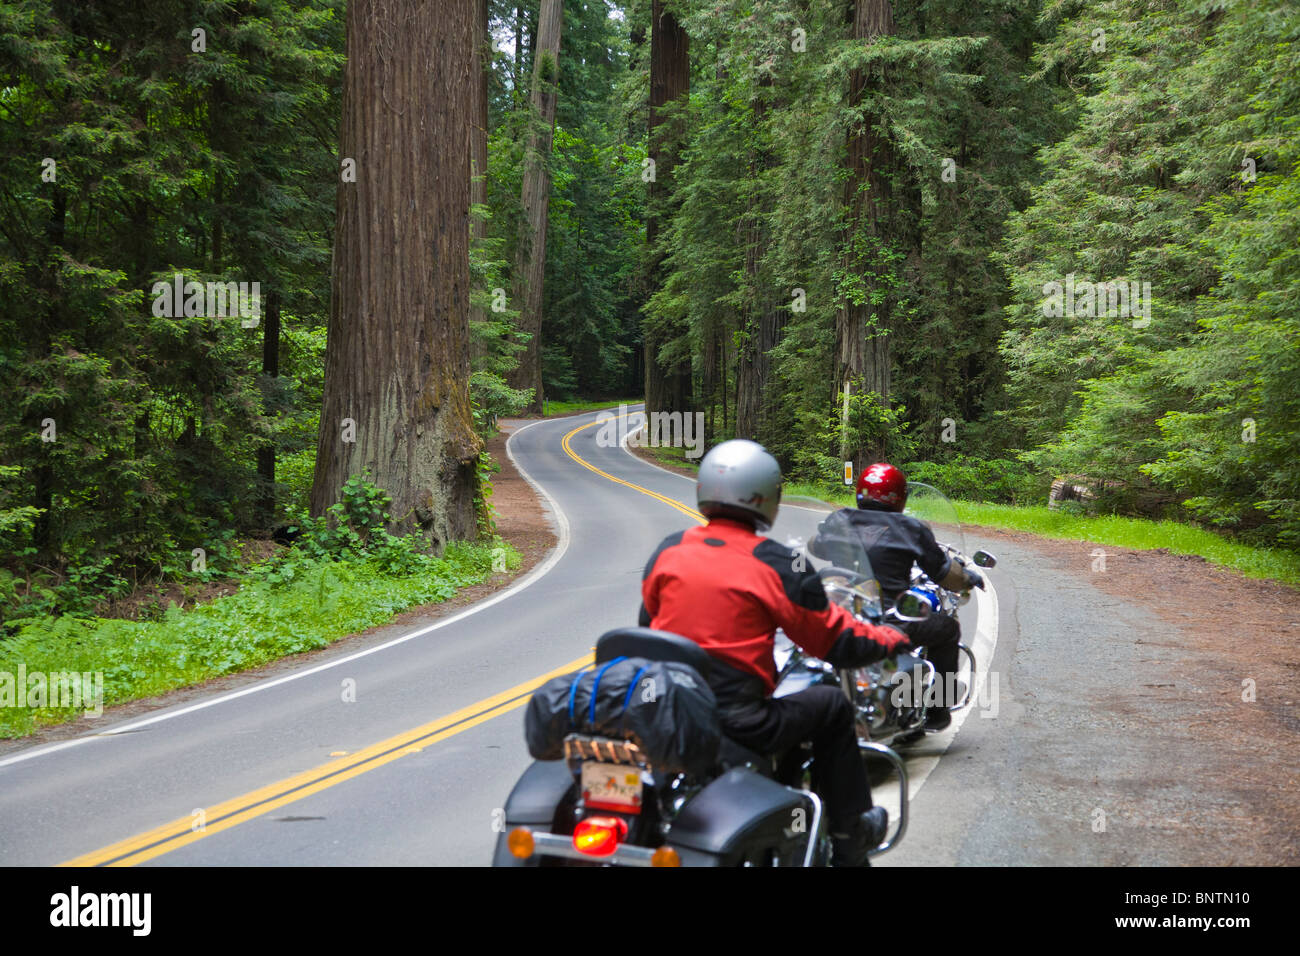 Motorcycle riders in Redwood trees in Humbolt Redwoods State Park in Northern California - Stock Image